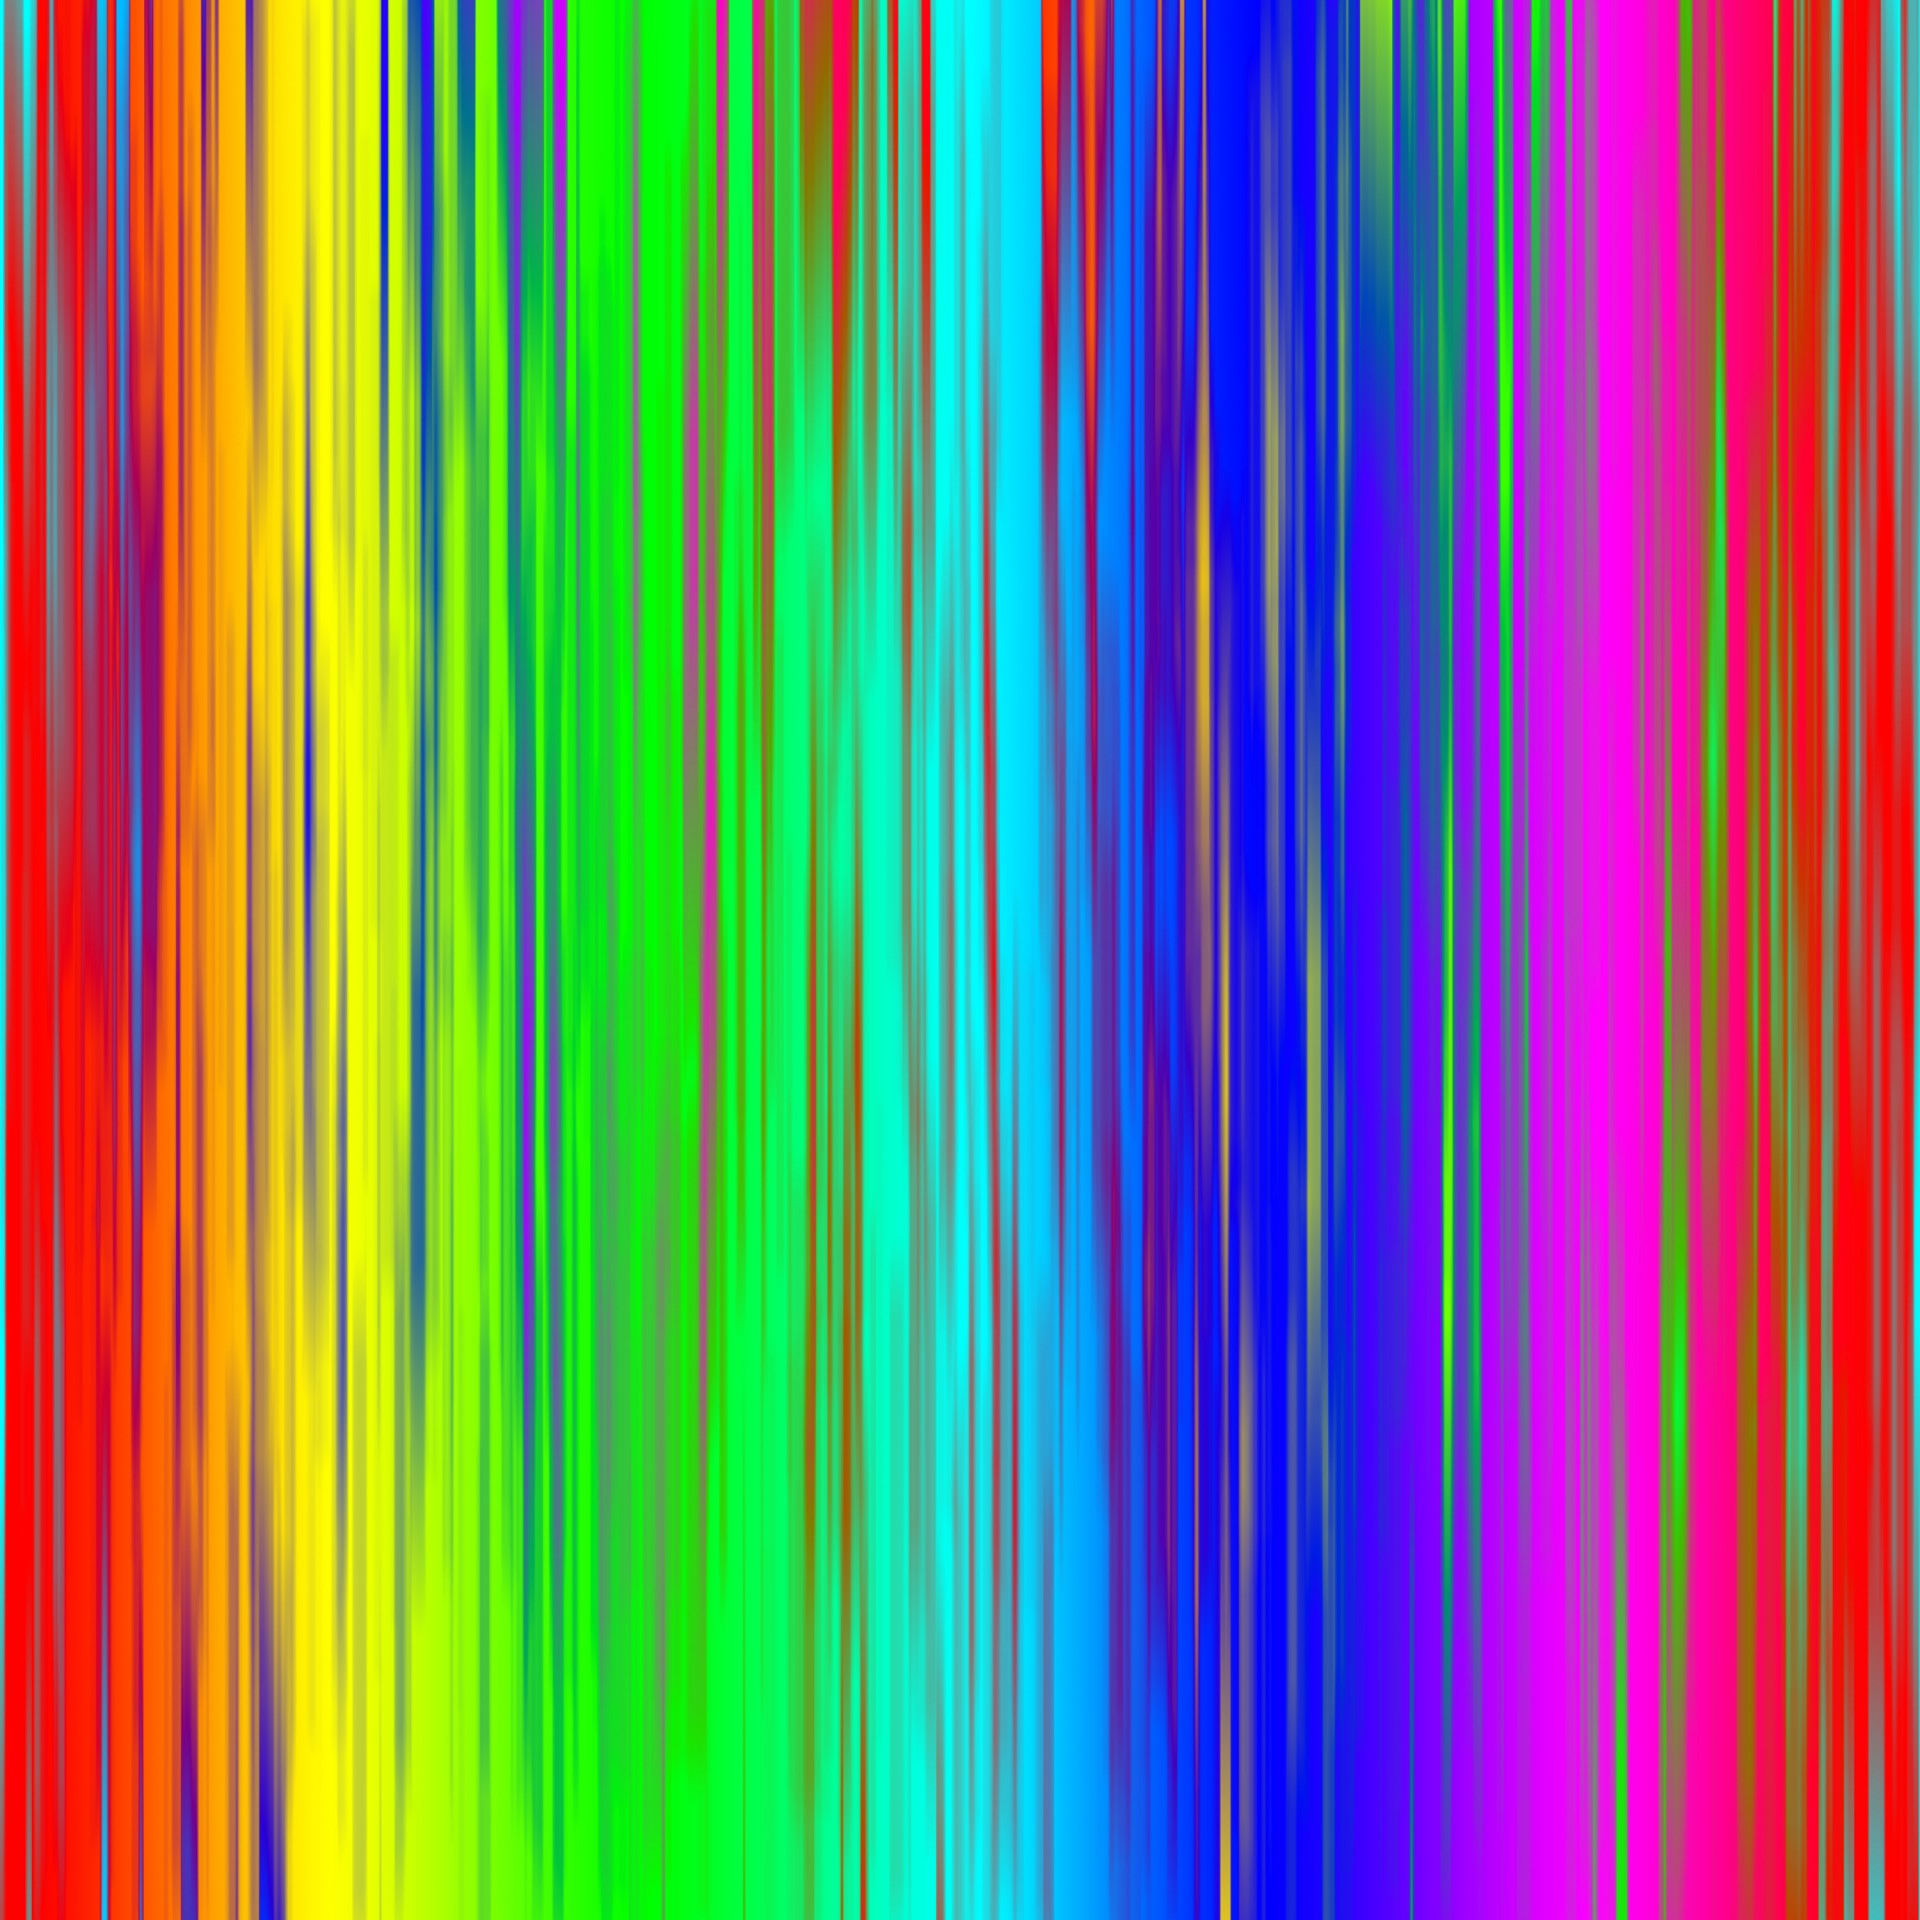 Rainbow Stripes Free Stock Photo - Public Domain Pictures